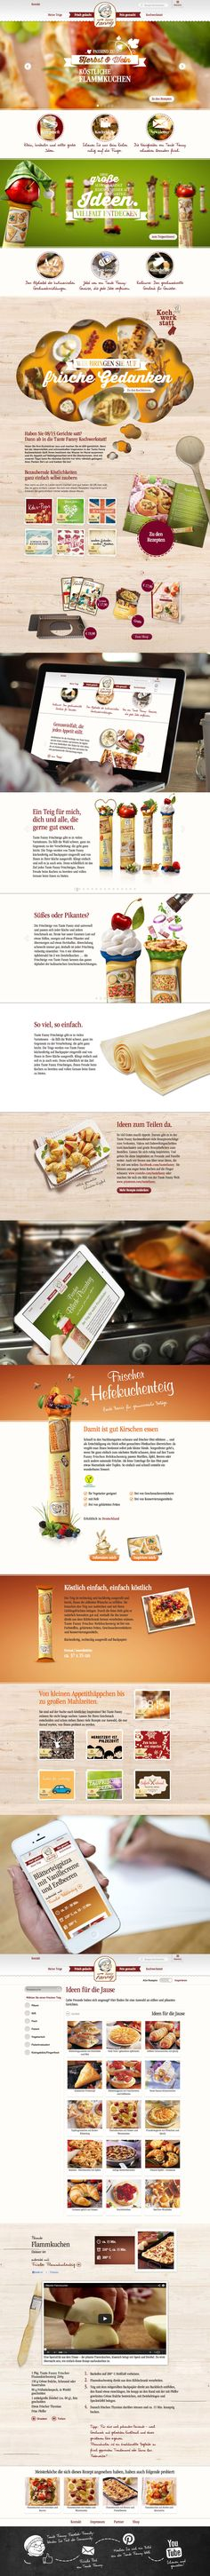 Cool Full Responsive Food Website with Recipes www.tantefanny.at #webdesign, #foodwebsite, responsive, #digitalwerk.at